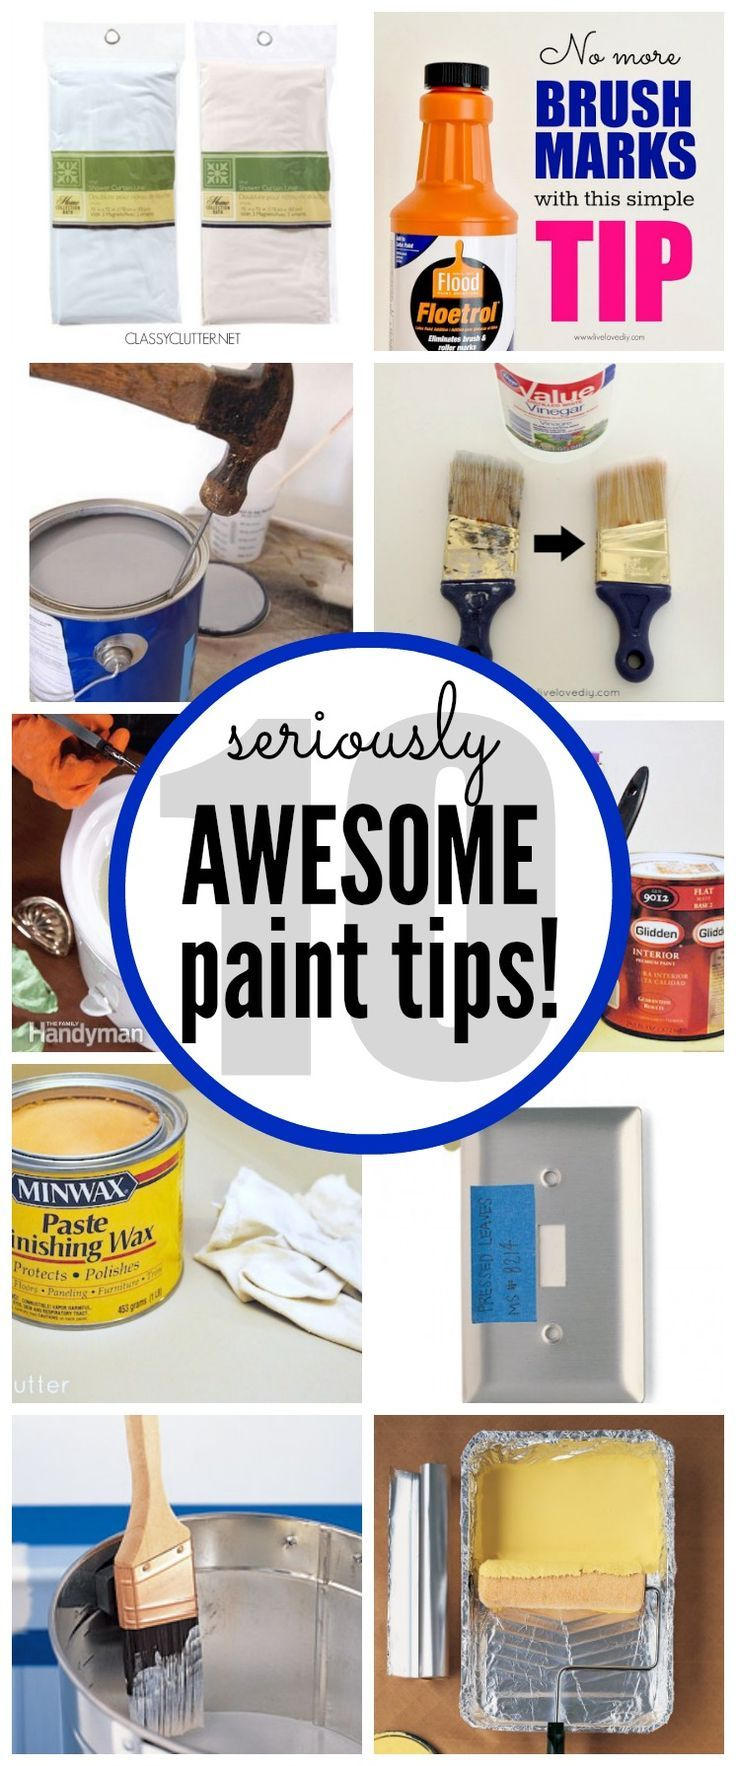 10 seriously awesome Painting Tips & Tricks that are borderline genius! | http://www.classyclutter.net